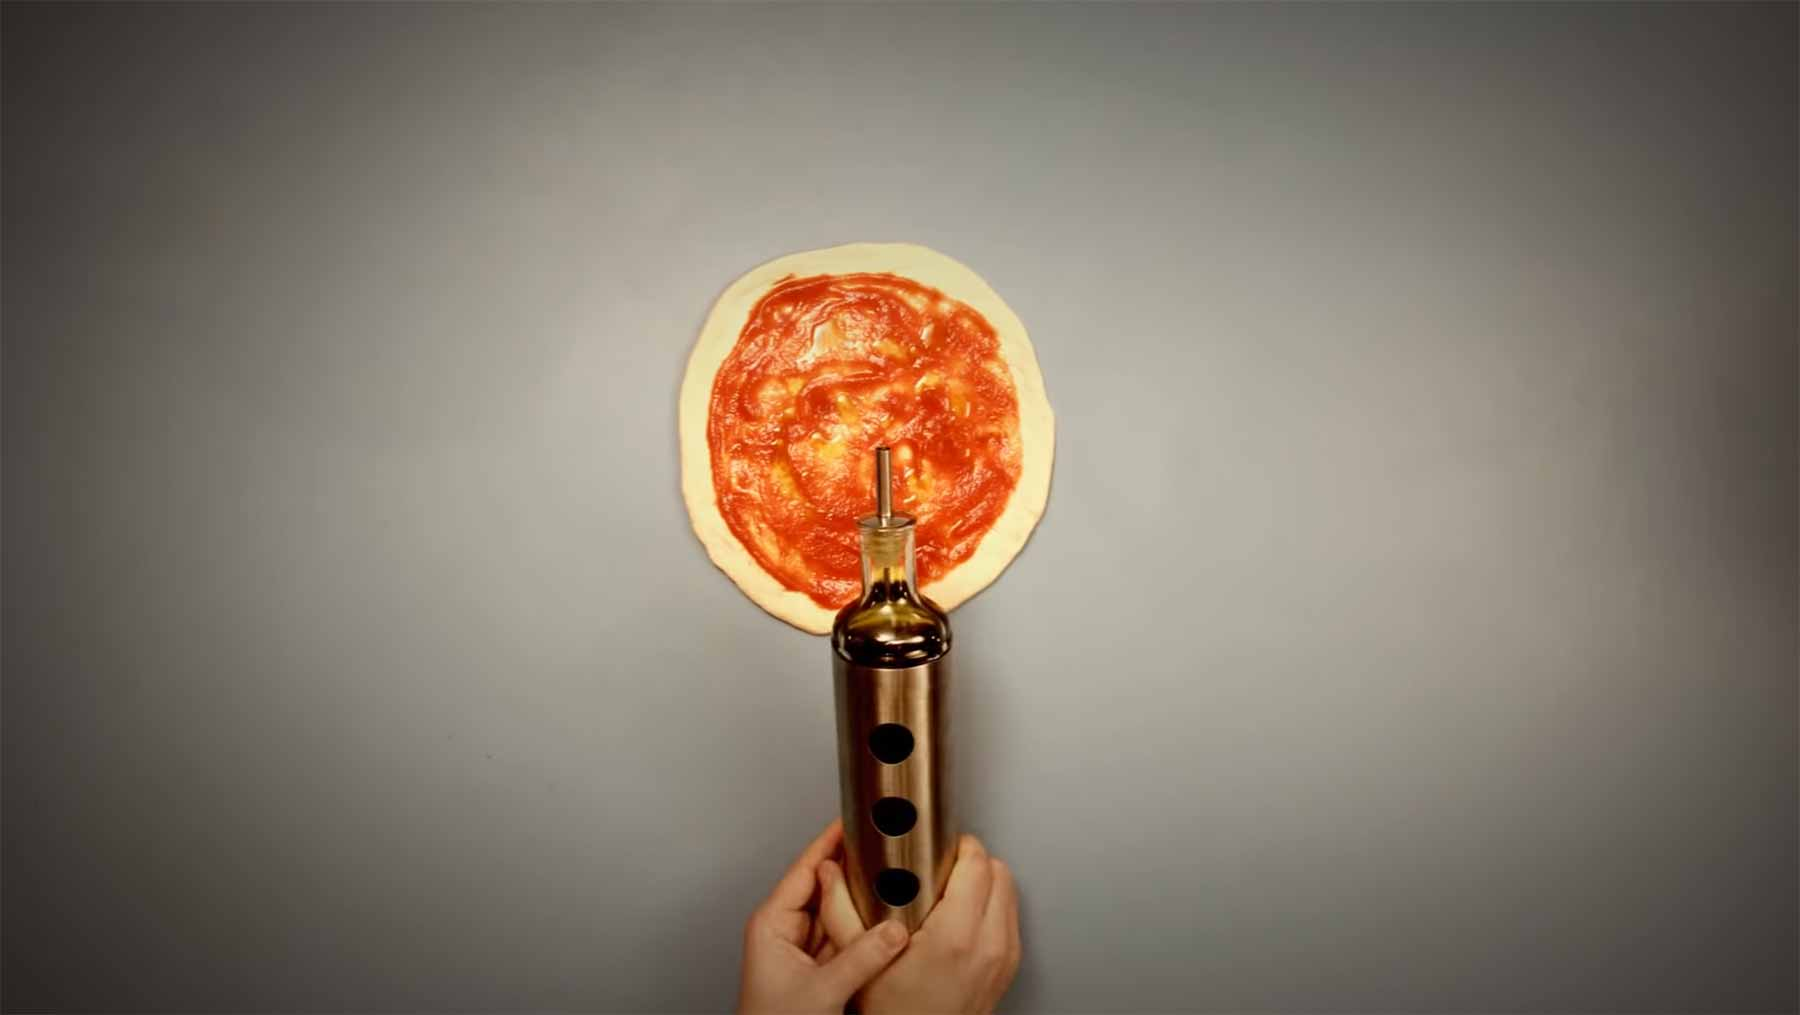 Kommt, wir backen uns eine Stopmotion-Pizza stopmotion-pizza-backen